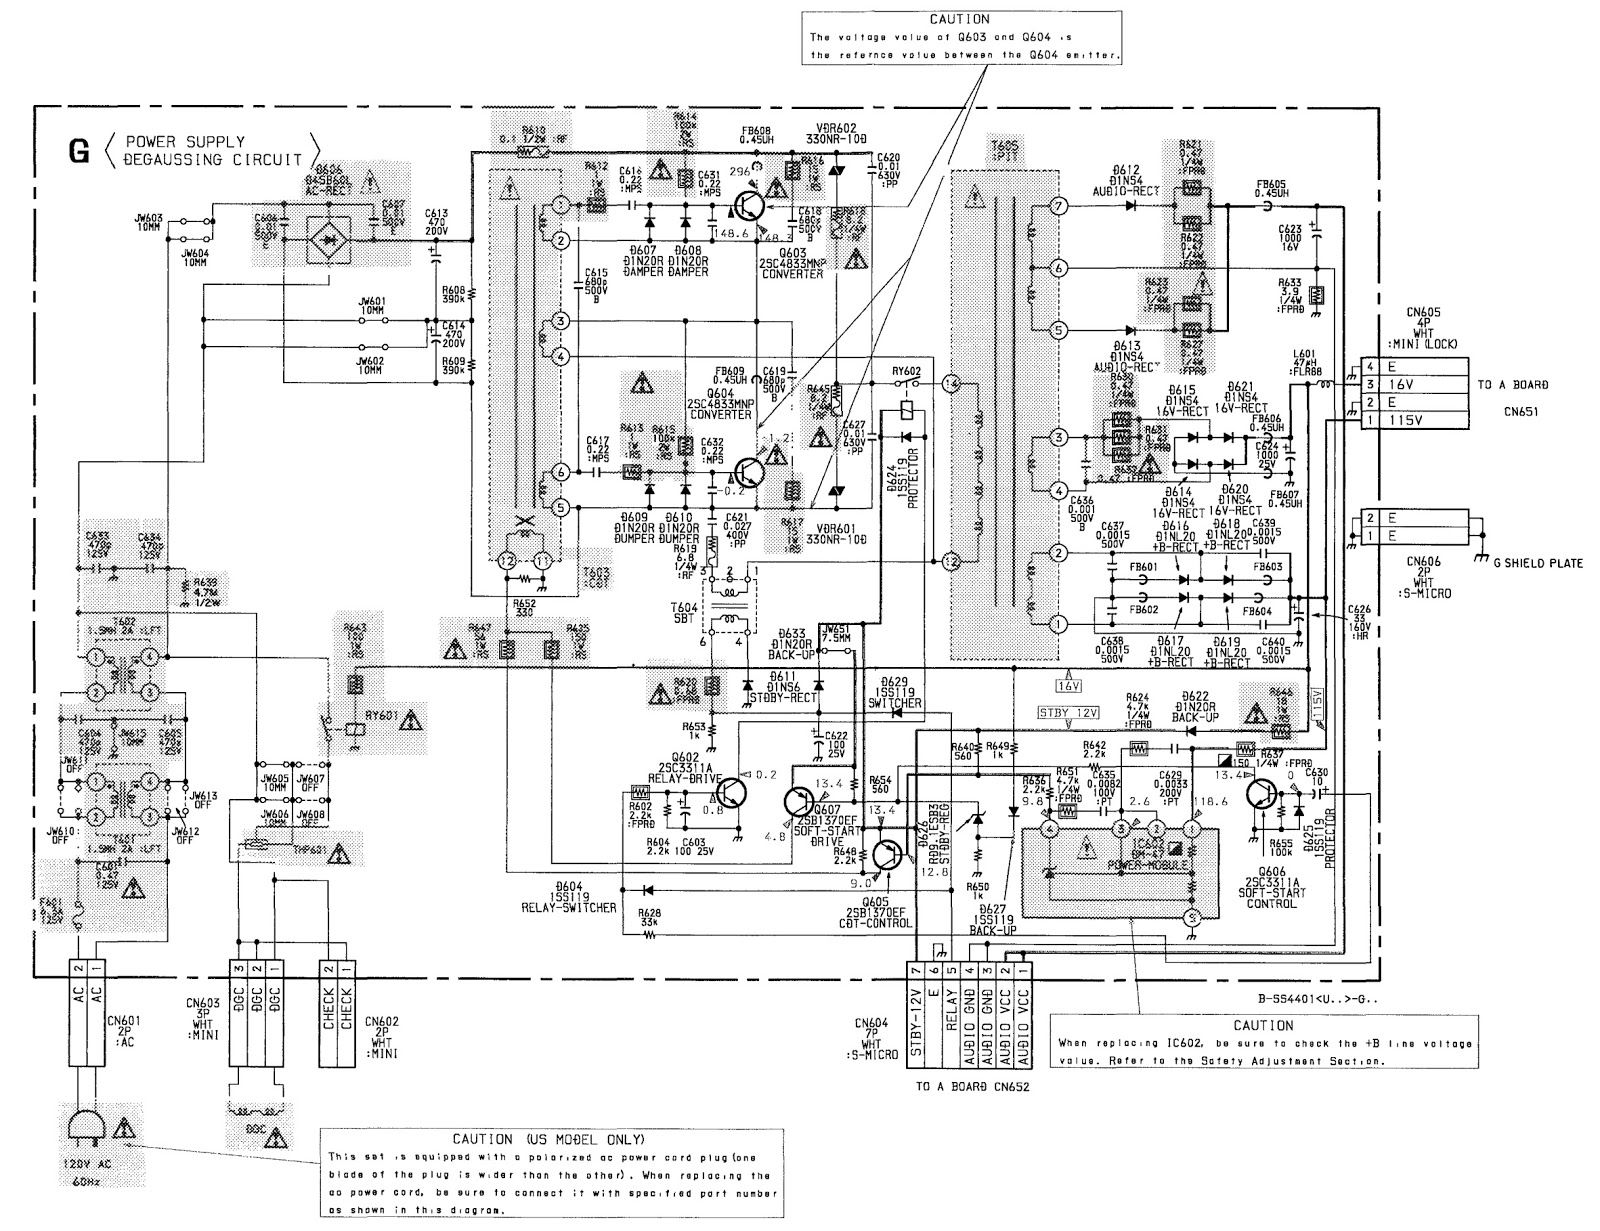 Sony Tv Circuit Diagram  Electrical Wiring Diagram